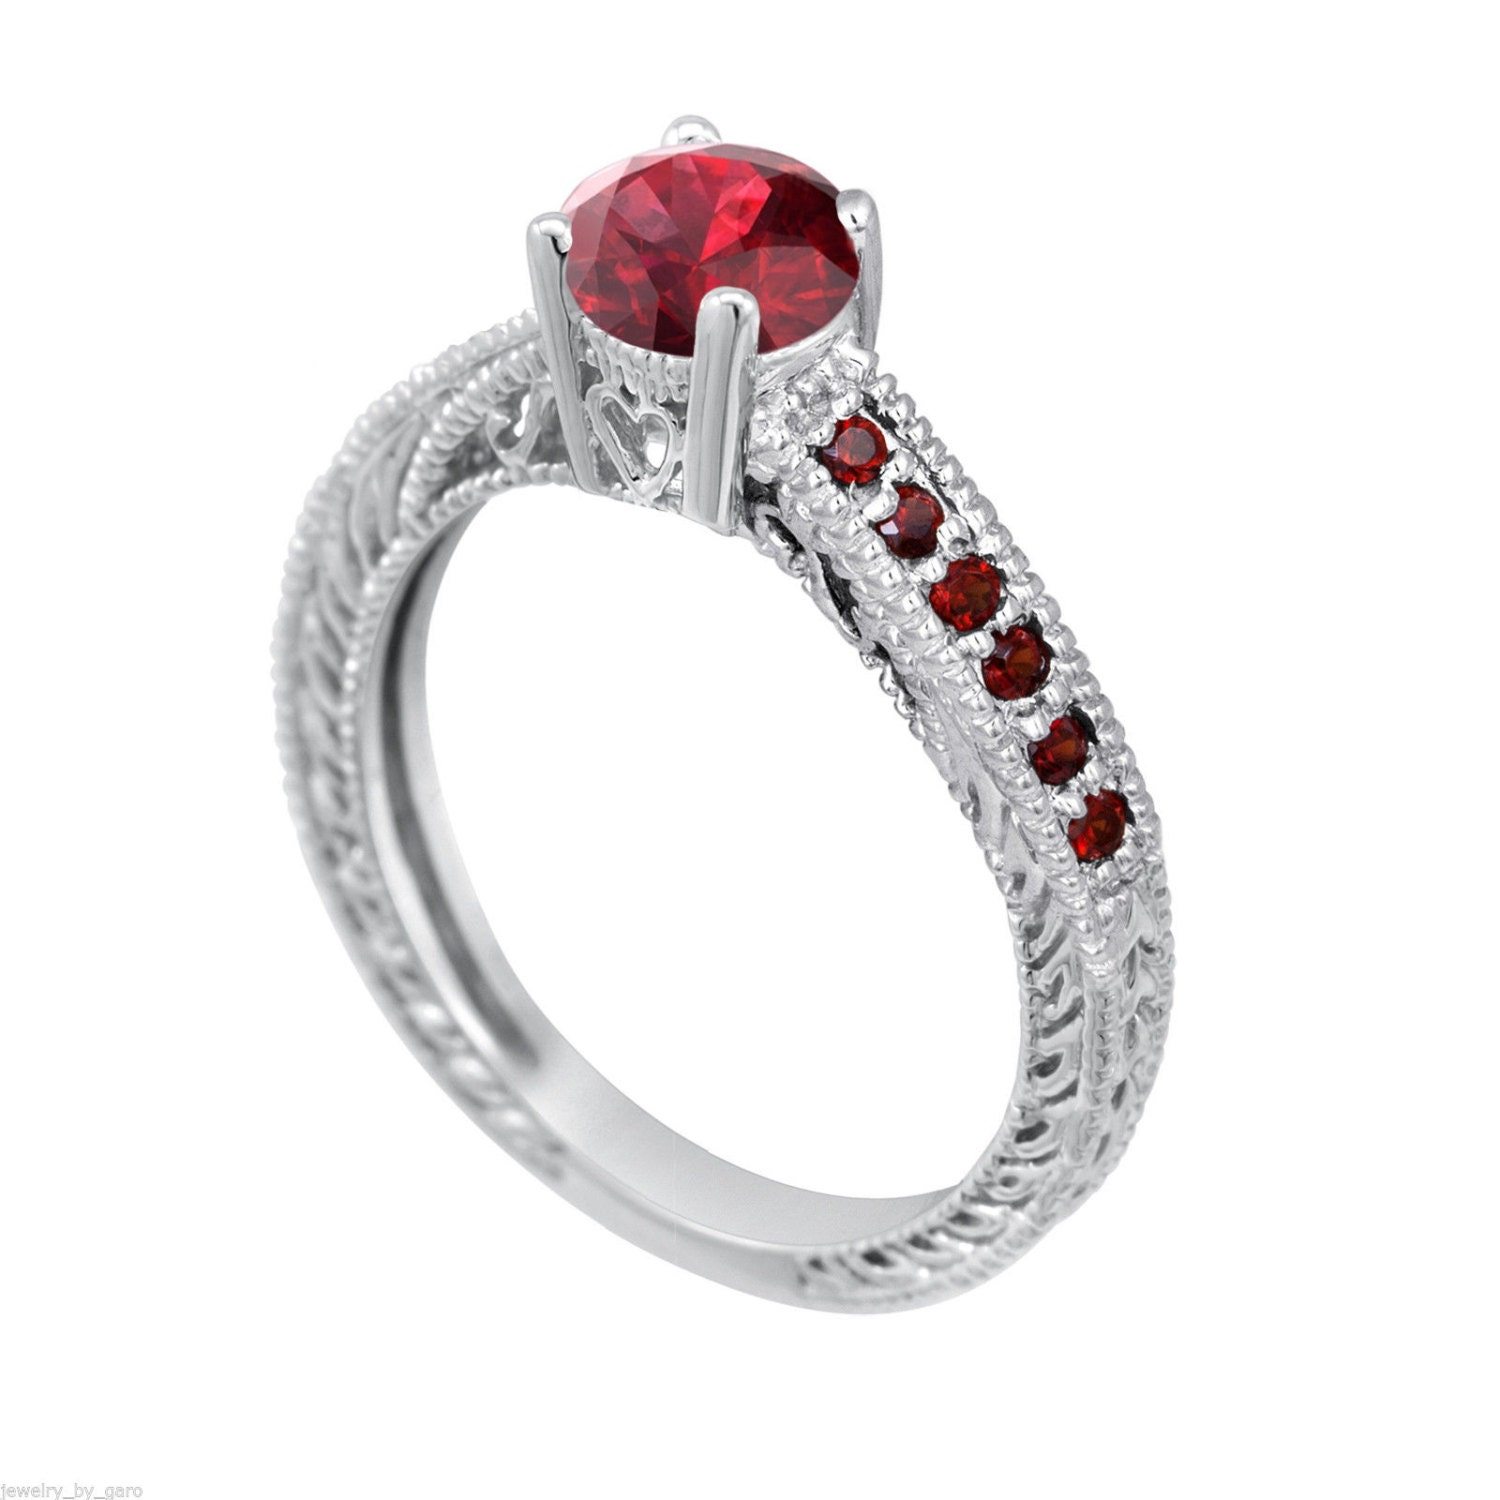 Garnet Ring Bands: Garnet Engagement Ring 14K White Gold 0.65 Carat By